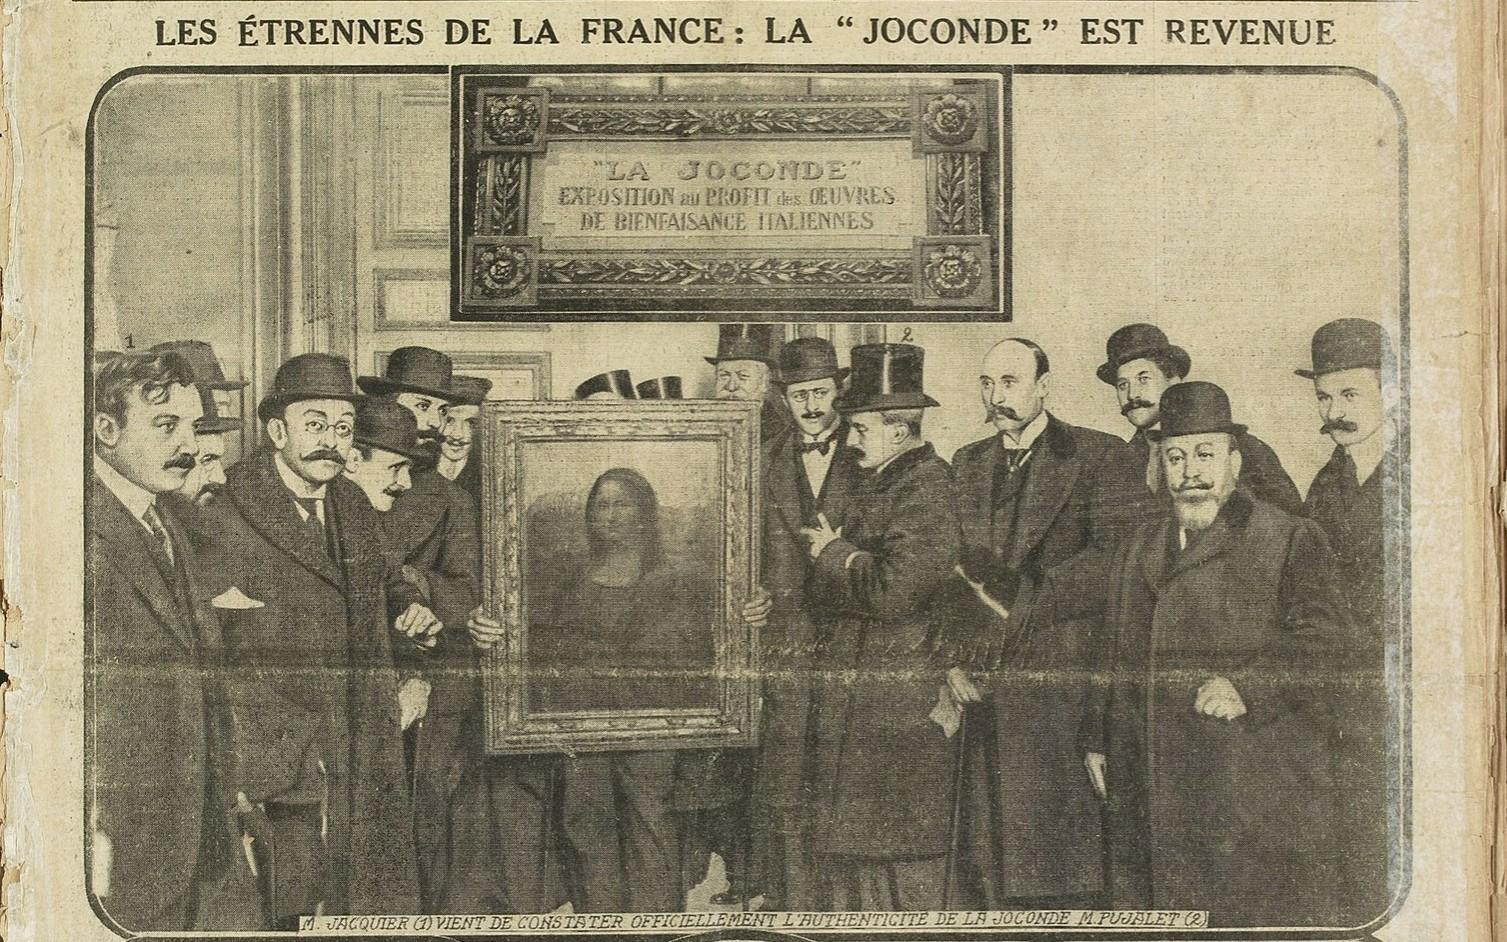 Mona Lisa is returned to Louvre newspaper clipping from 1914 showing men in top hats with the painting